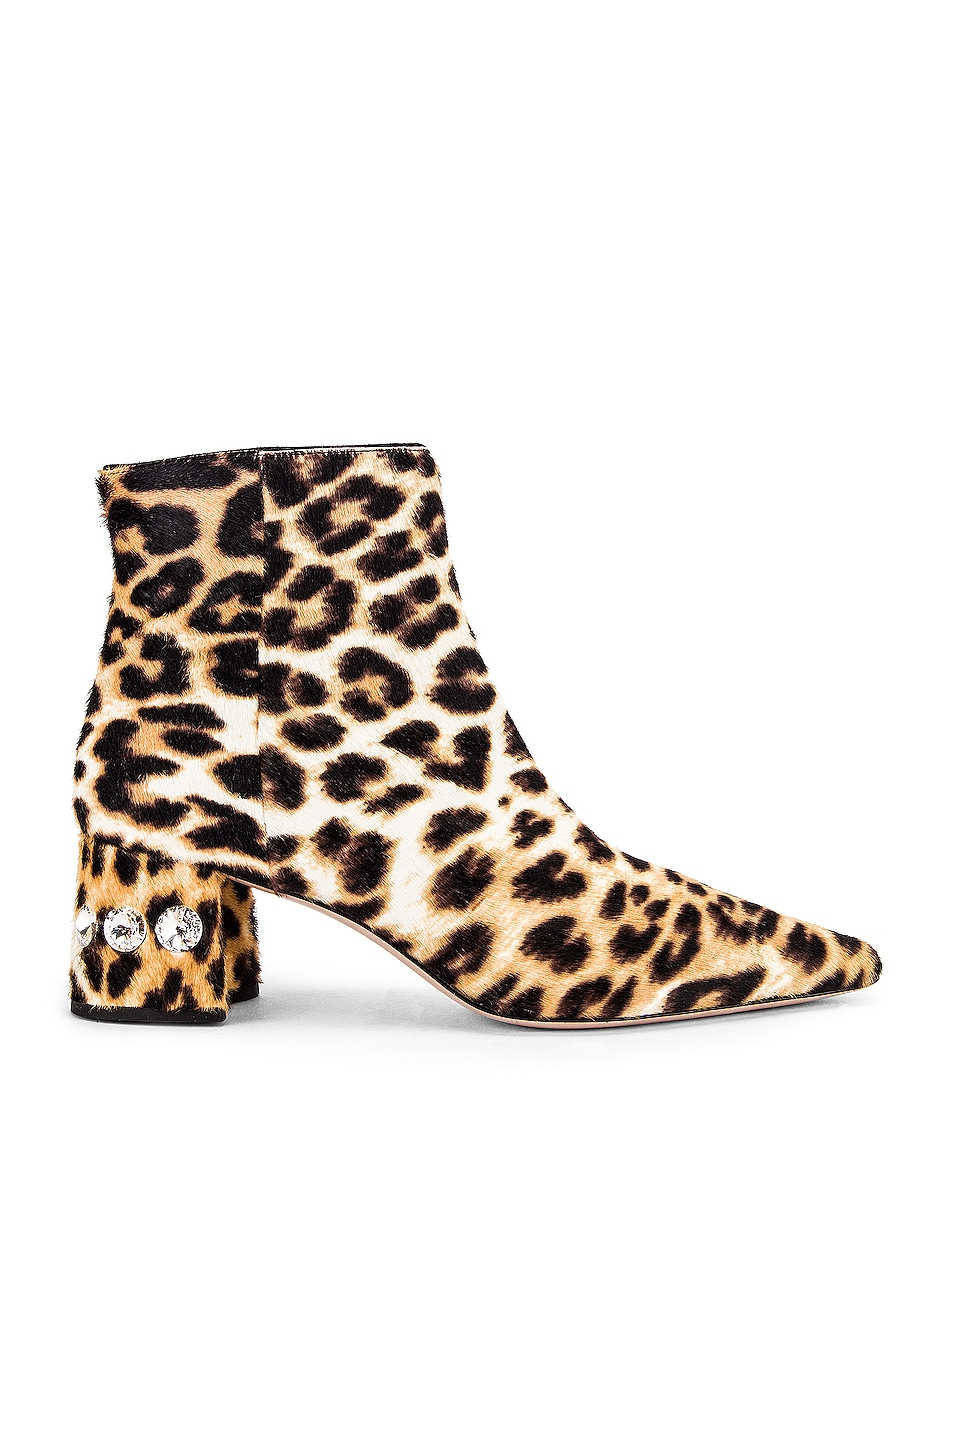 Image 1 of Miu Miu Jeweled Fur Ankle Boots in Leopard